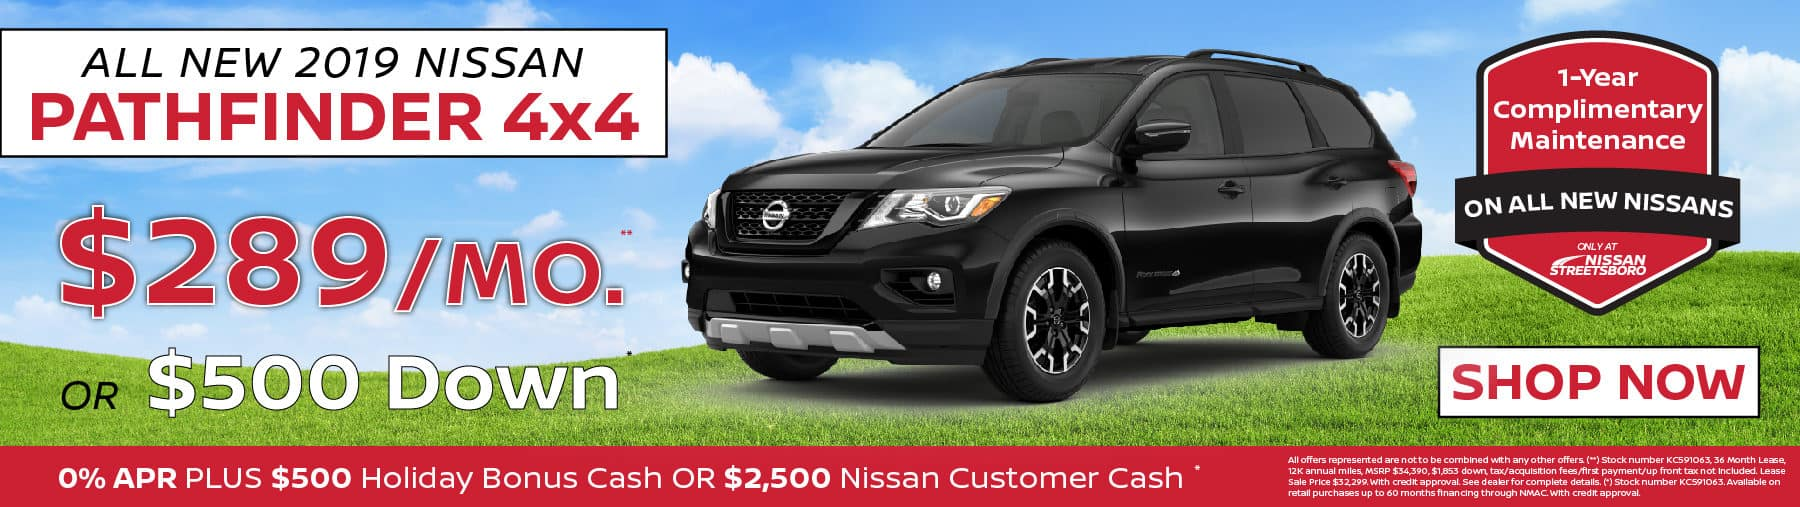 Nissan Pathfinder Special Ohio